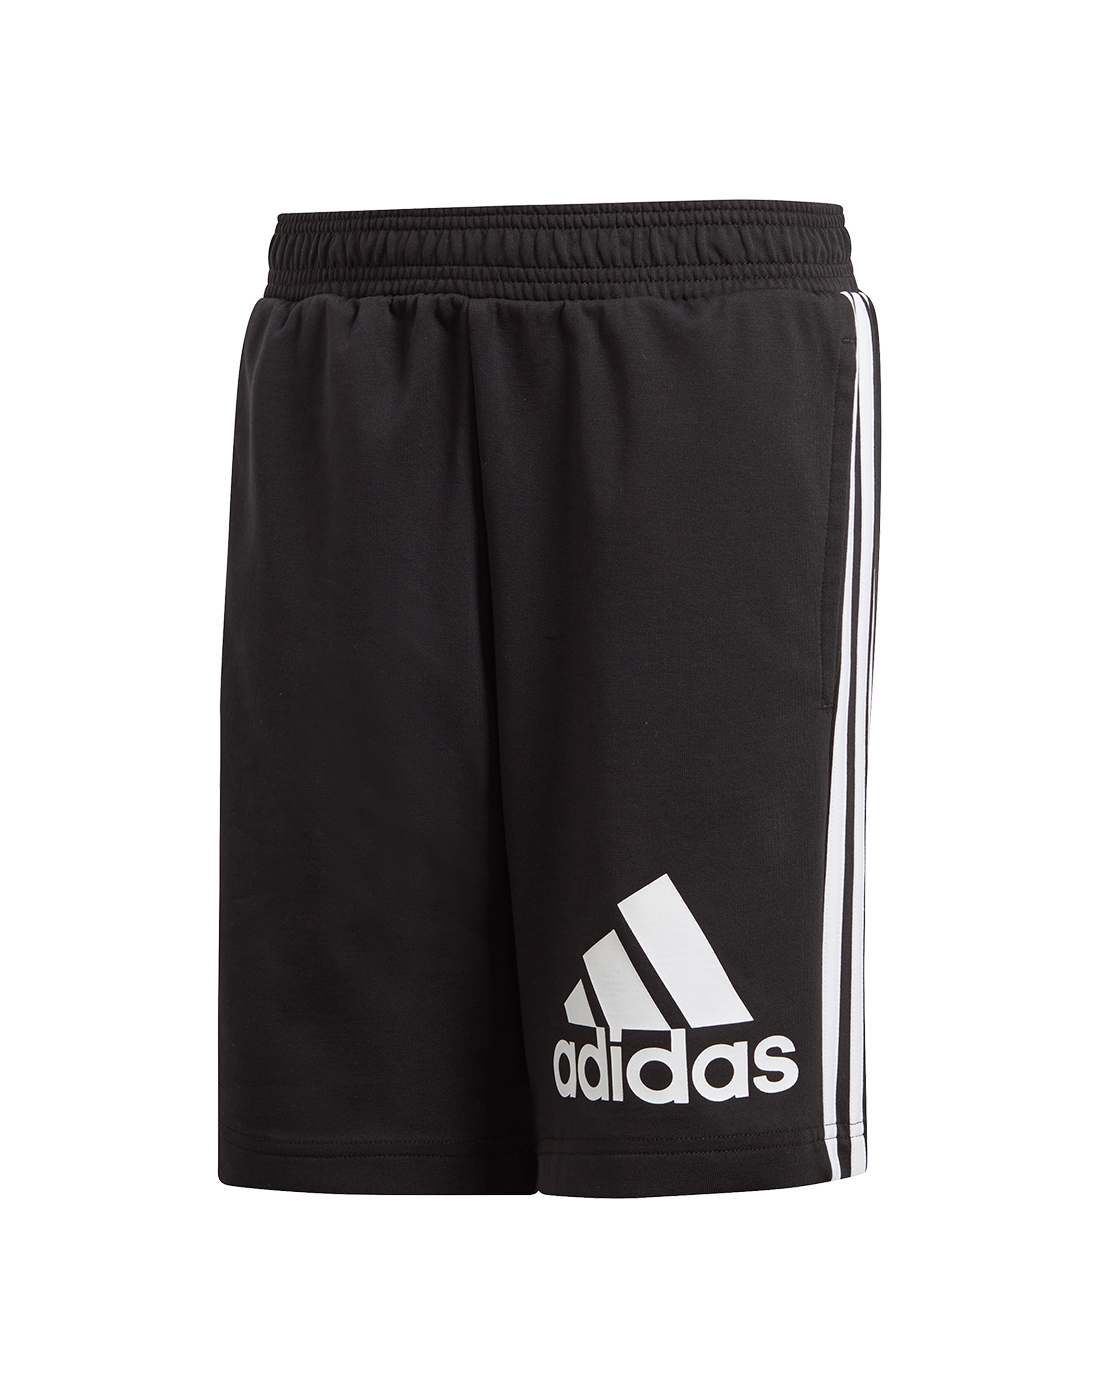 6d6f5f606632b8 Boy s Black adidas Logo Shorts